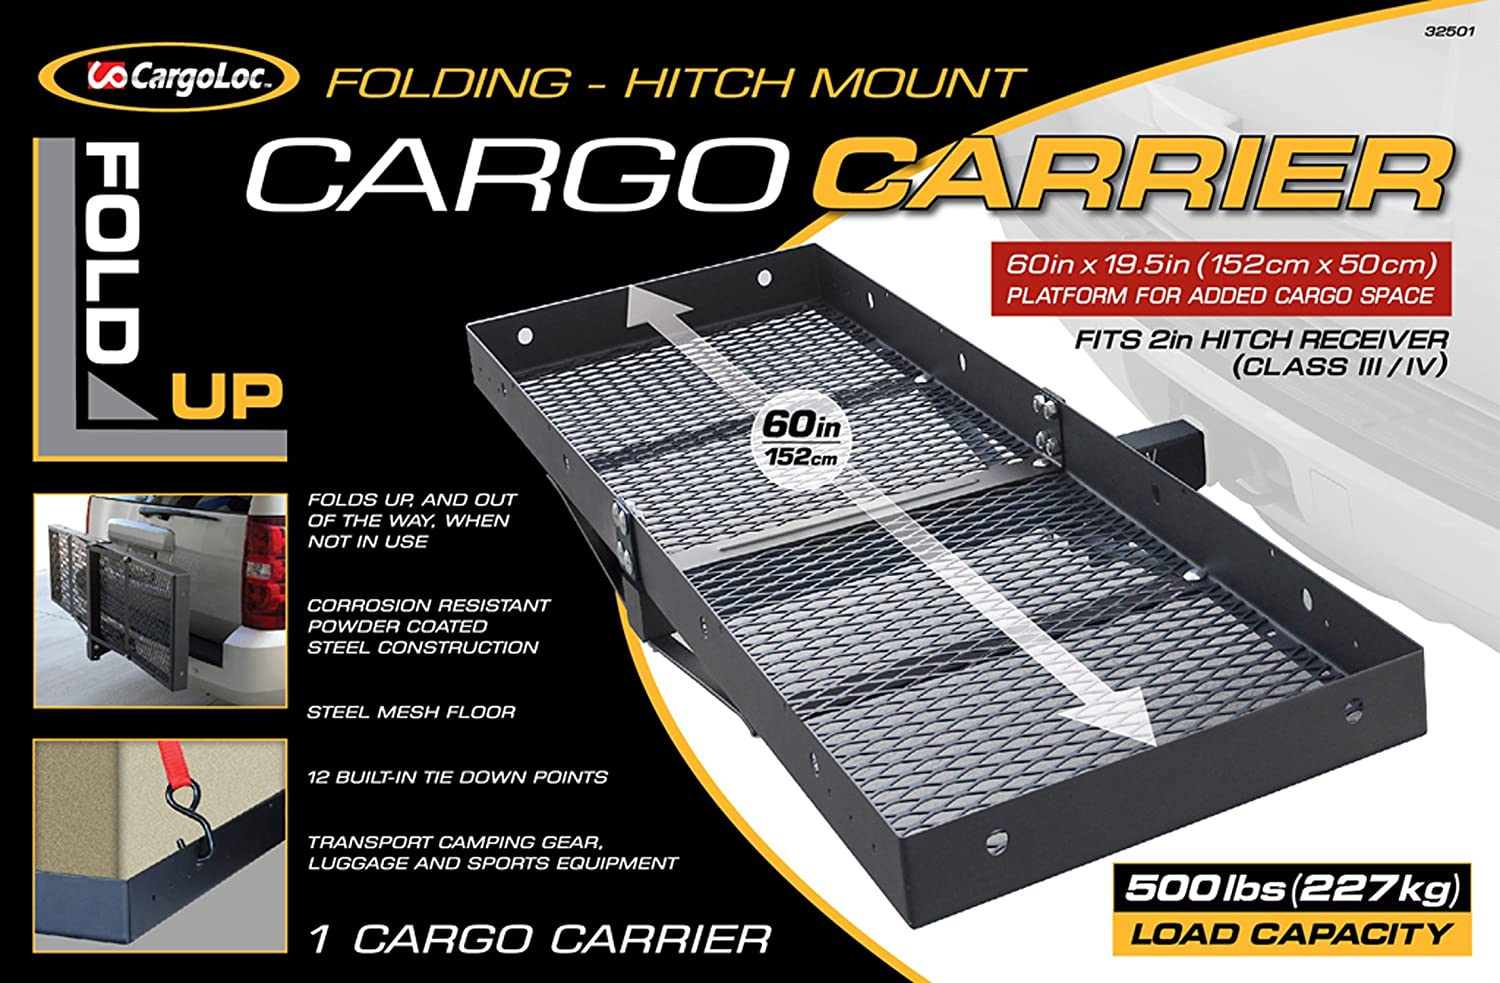 CargoLoc Hitch Mount 60 x 19.5 Cargo Carrier 500 lbs 32501 Fold-Up